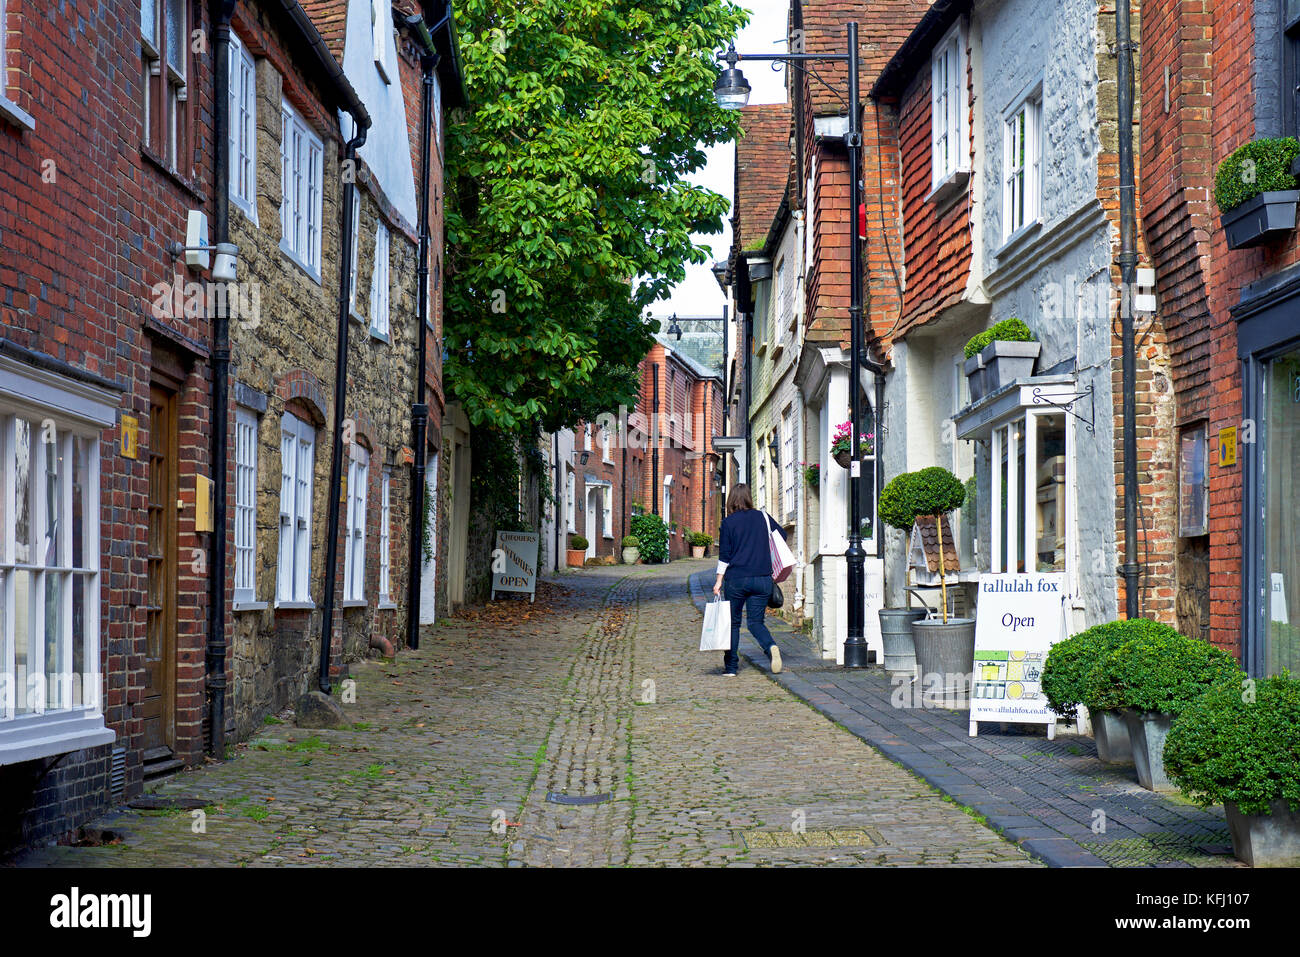 Woman shopping in cobbled Lombard Street in Petworth, a small town in east Sussex, England UK - Stock Image